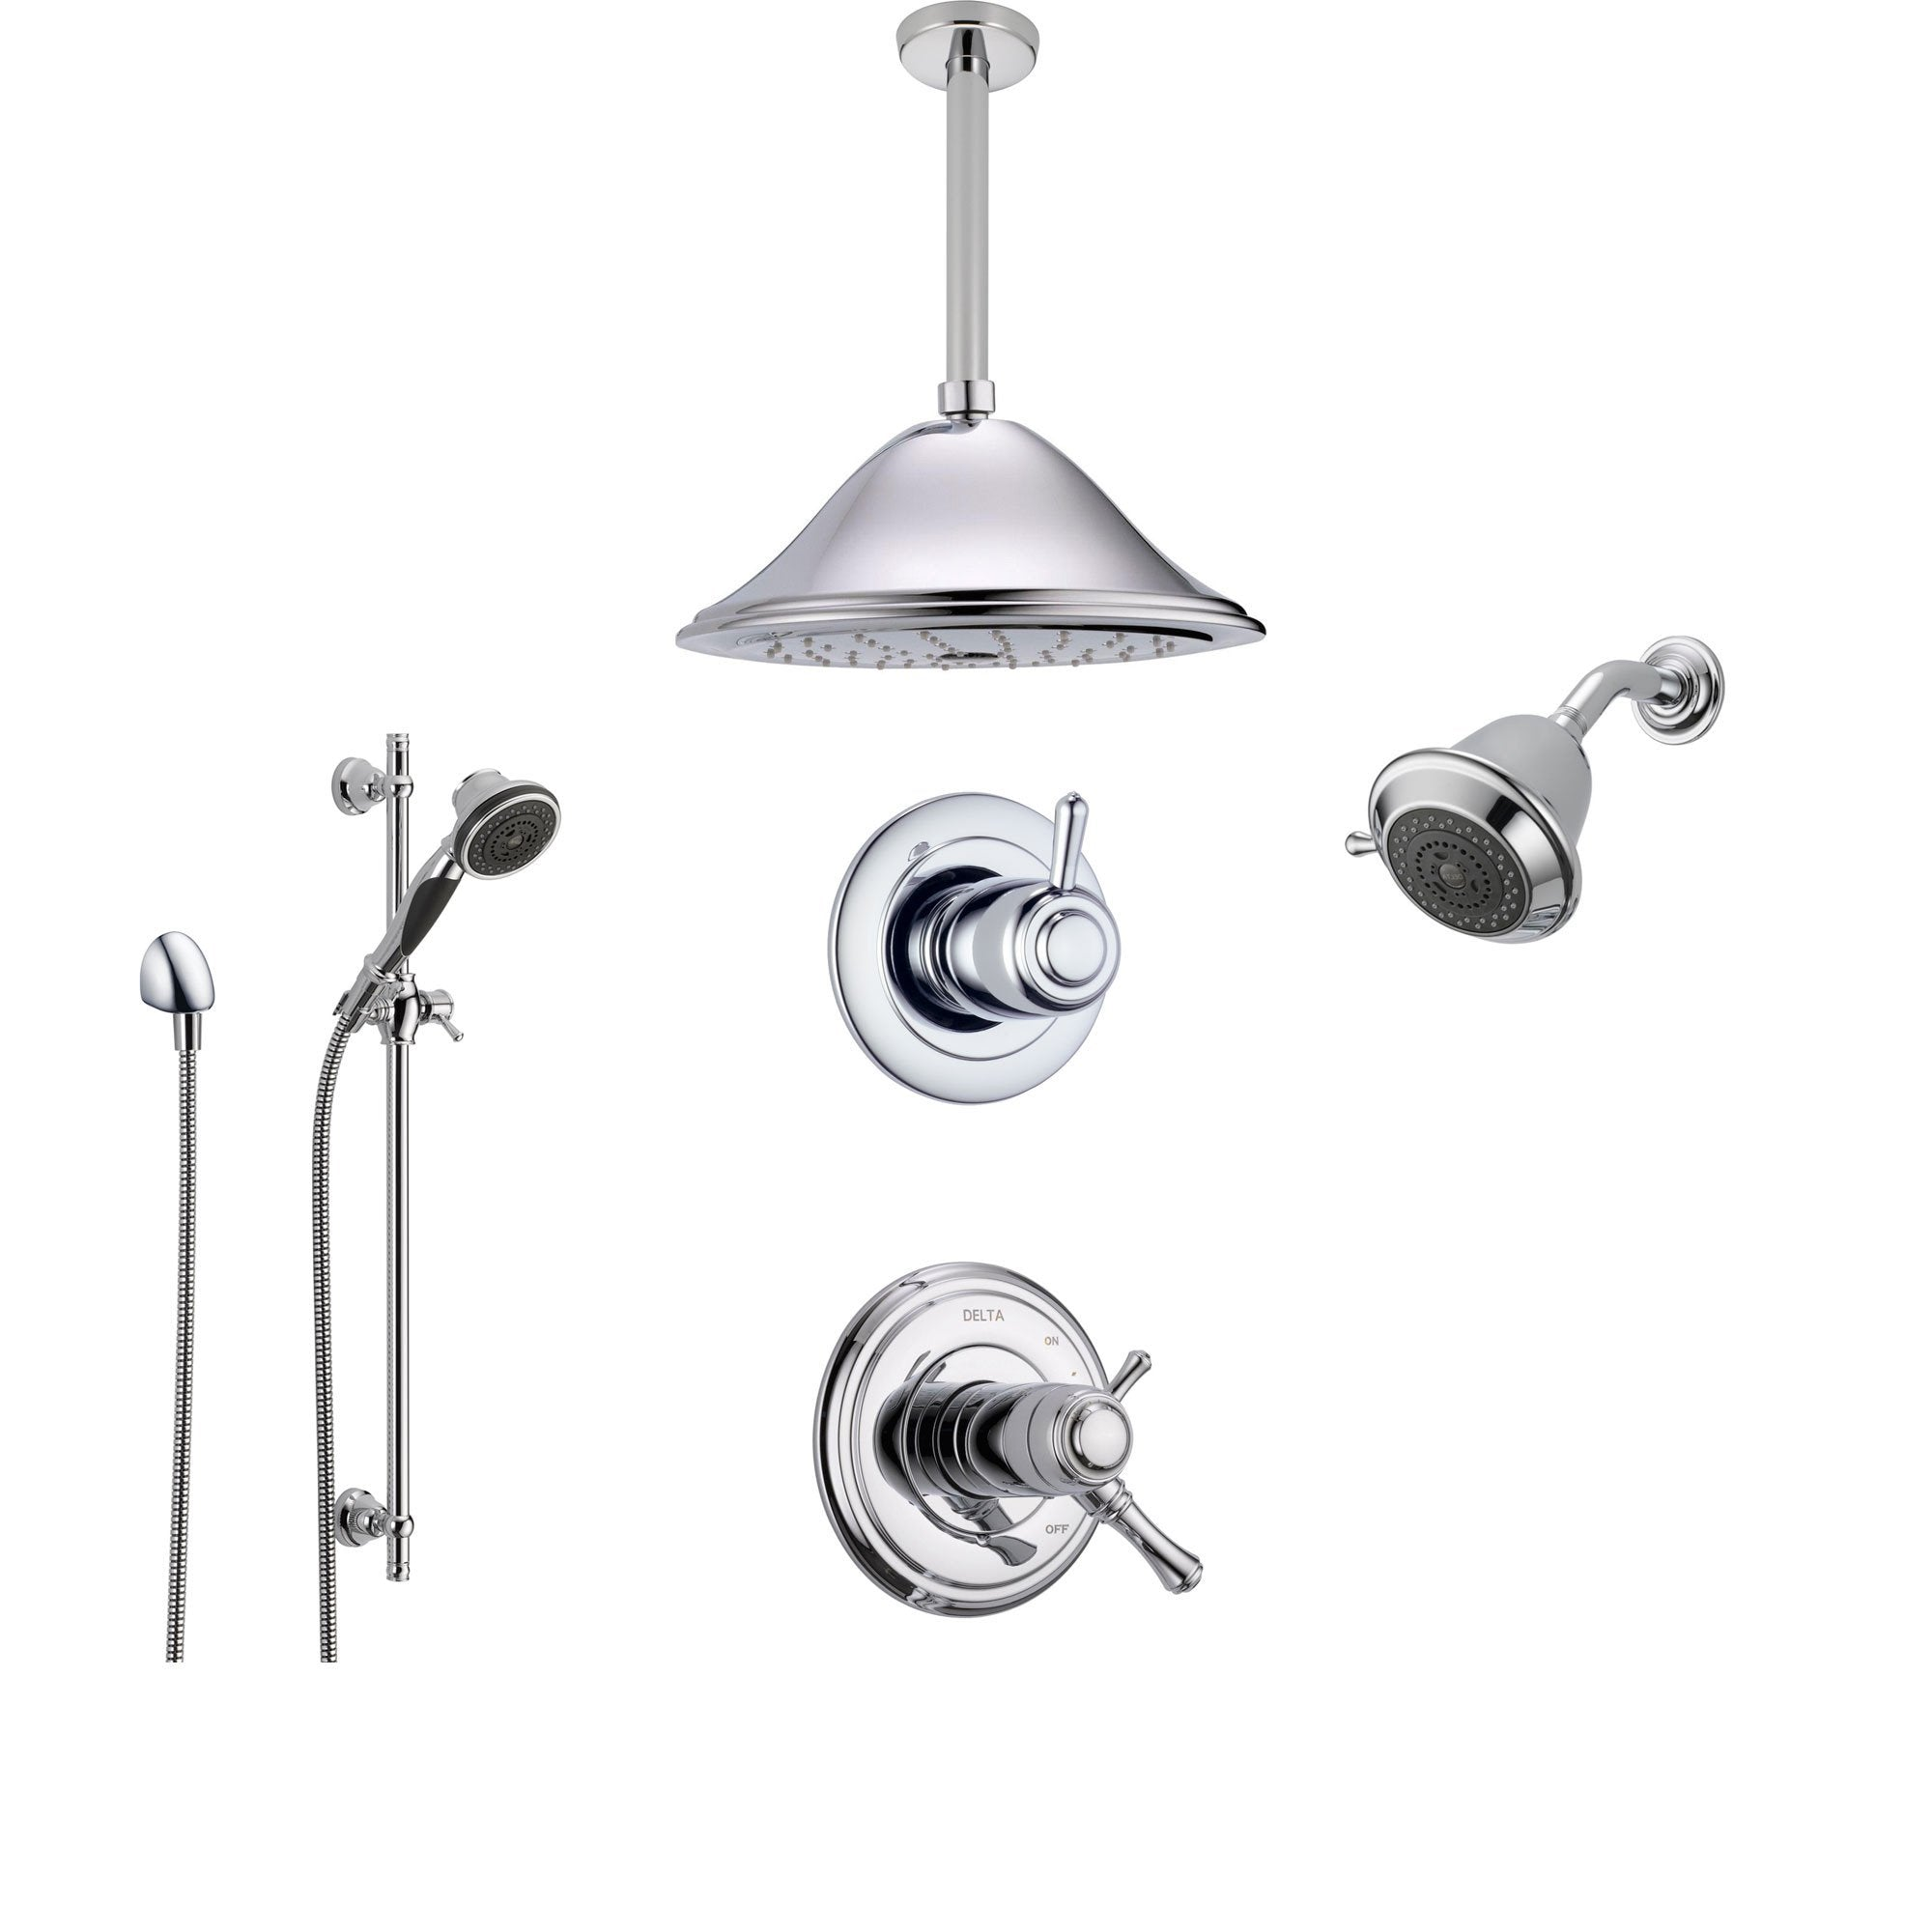 Shower Systems With Showerhead Ceiling Mount Rain